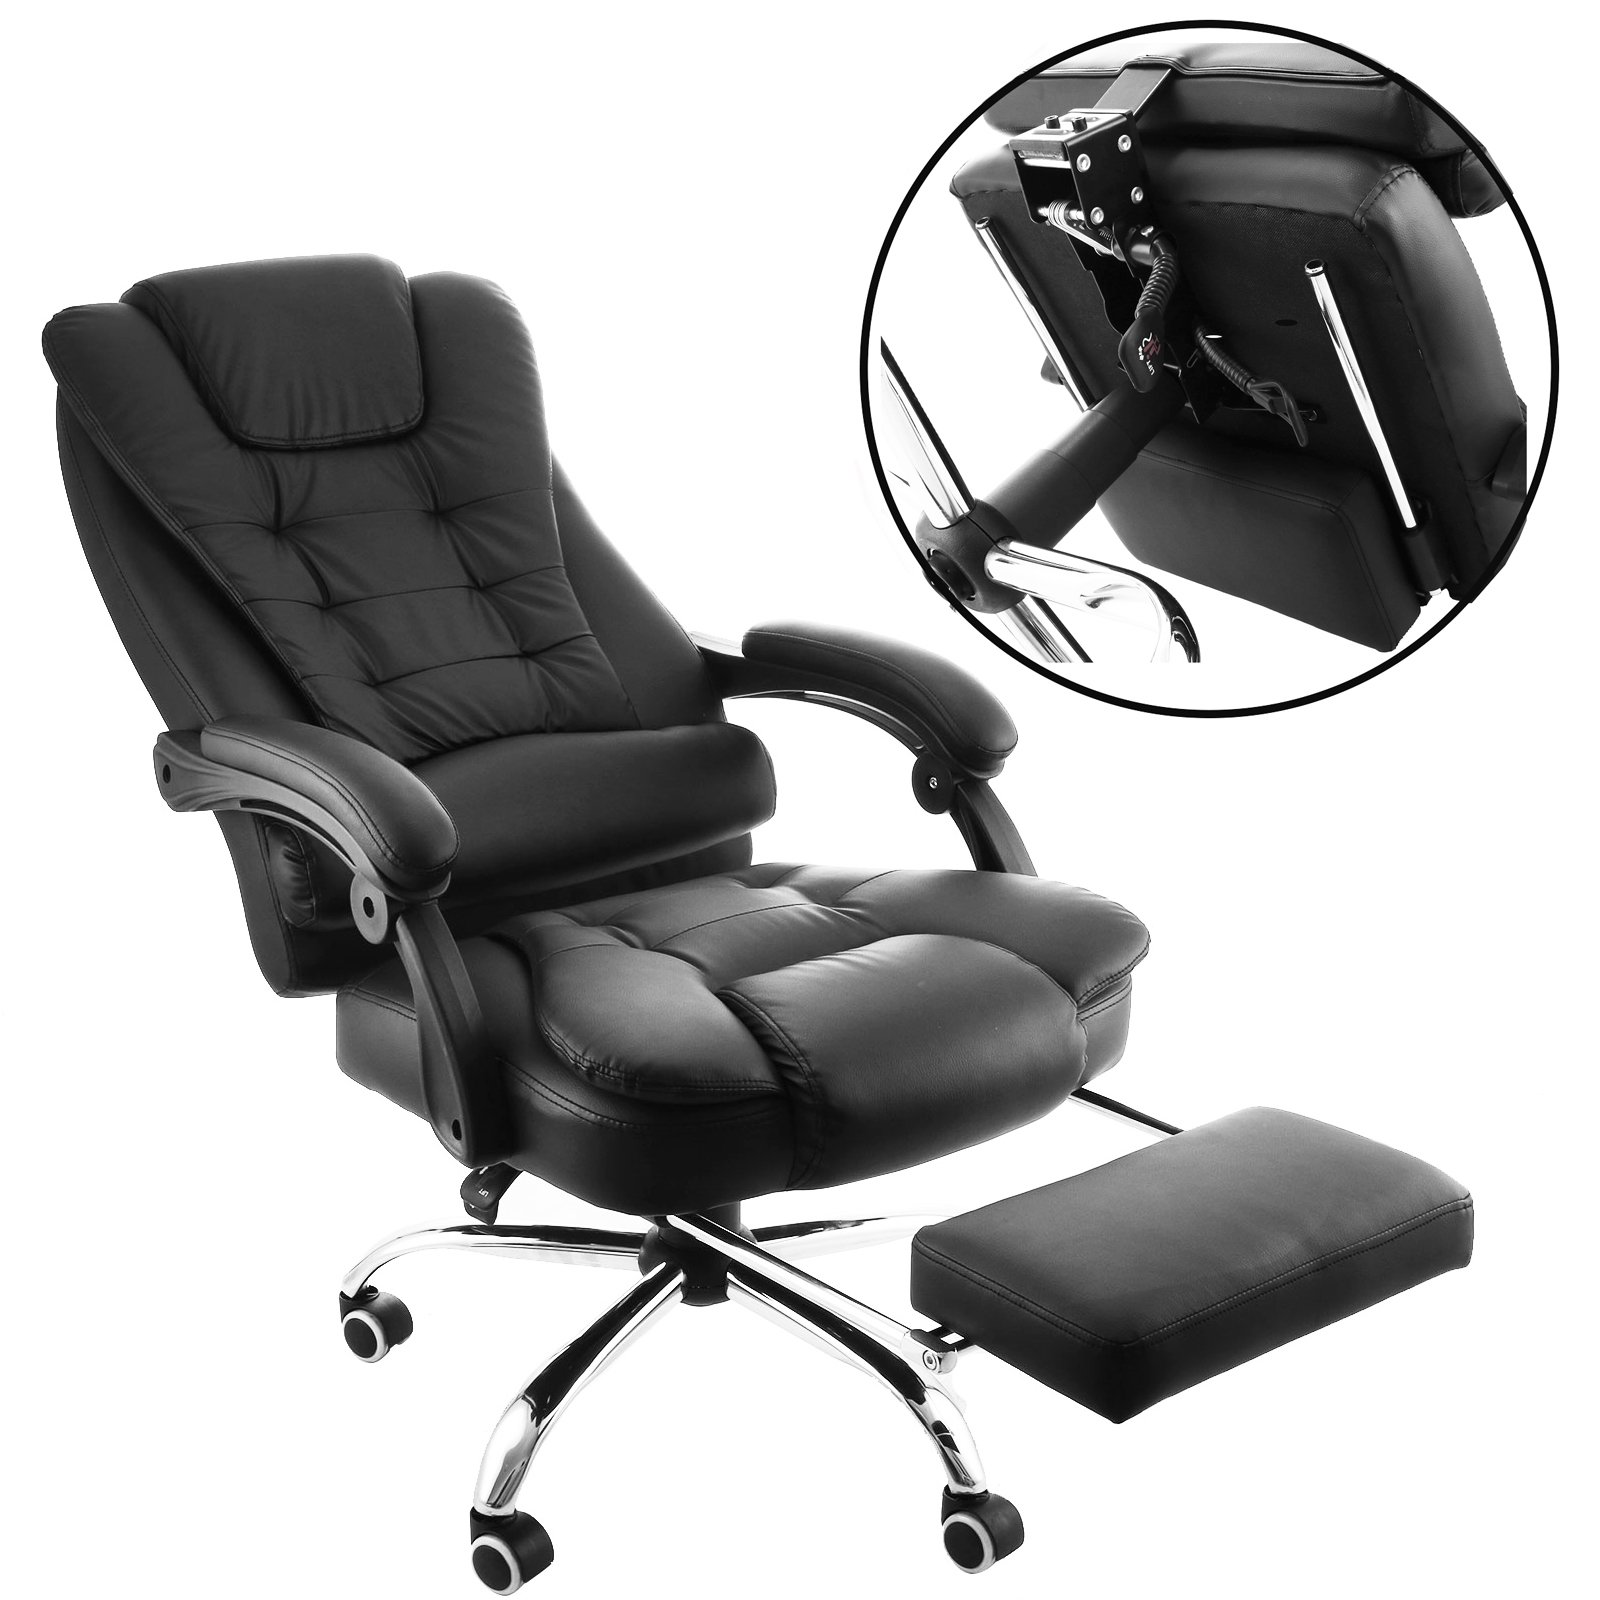 OrangeA High Back Office Chair Ergonomic PU Leather Executive Office Chair 360 Degree Swivel Reclining Office Chair with Footrest Black Computer Desk Chair (Executive Chair with Footrest)